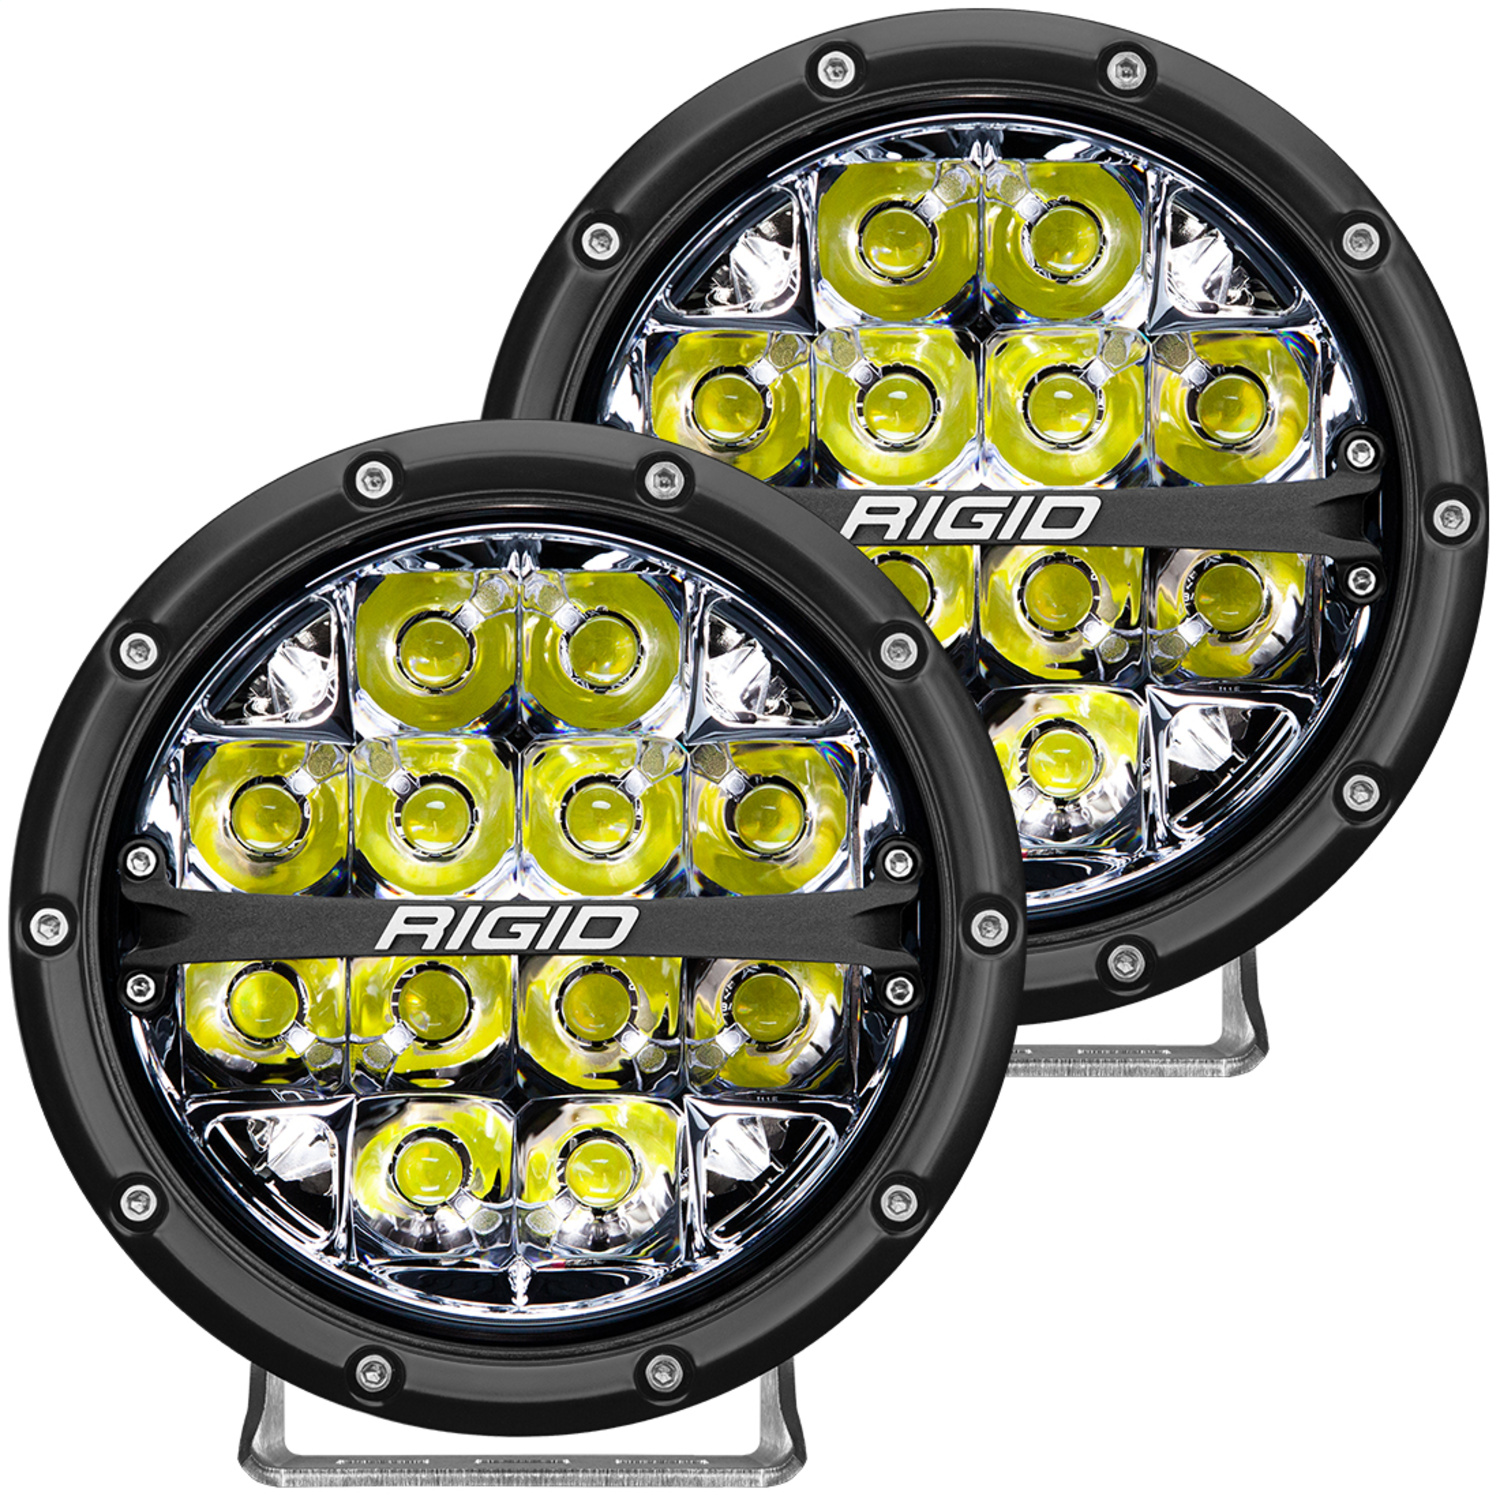 360-Series LED Off-Road Light, 6 in., Spot Beam, For High Speed 50 MPH Plus, White Backlight, Pair